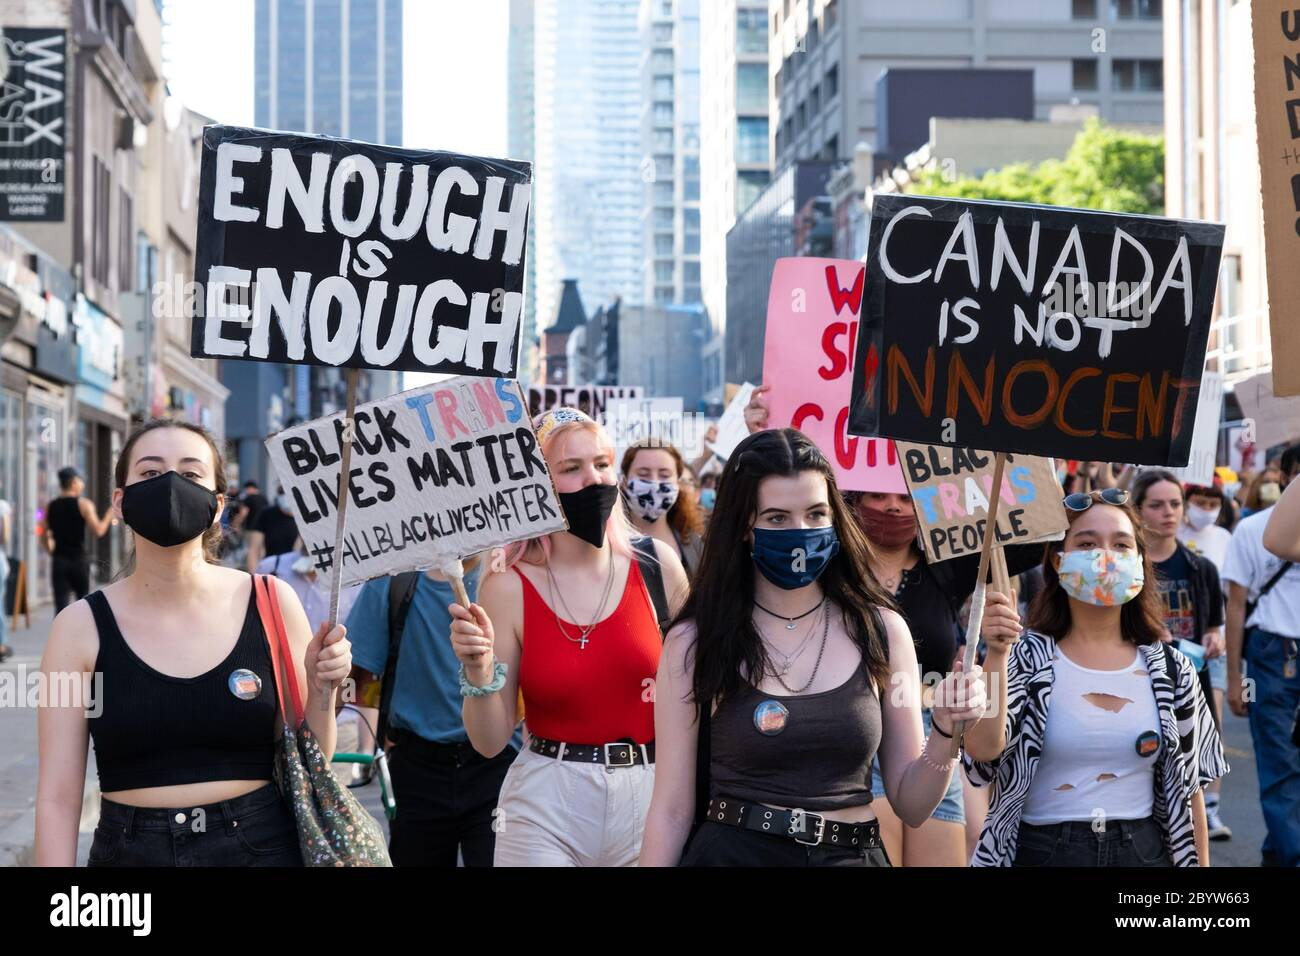 Protesters march in support of Black Lives Matter in Toronto, Ontario, criticizing Canada's history and drawing attention to trans lives as well. Stock Photo